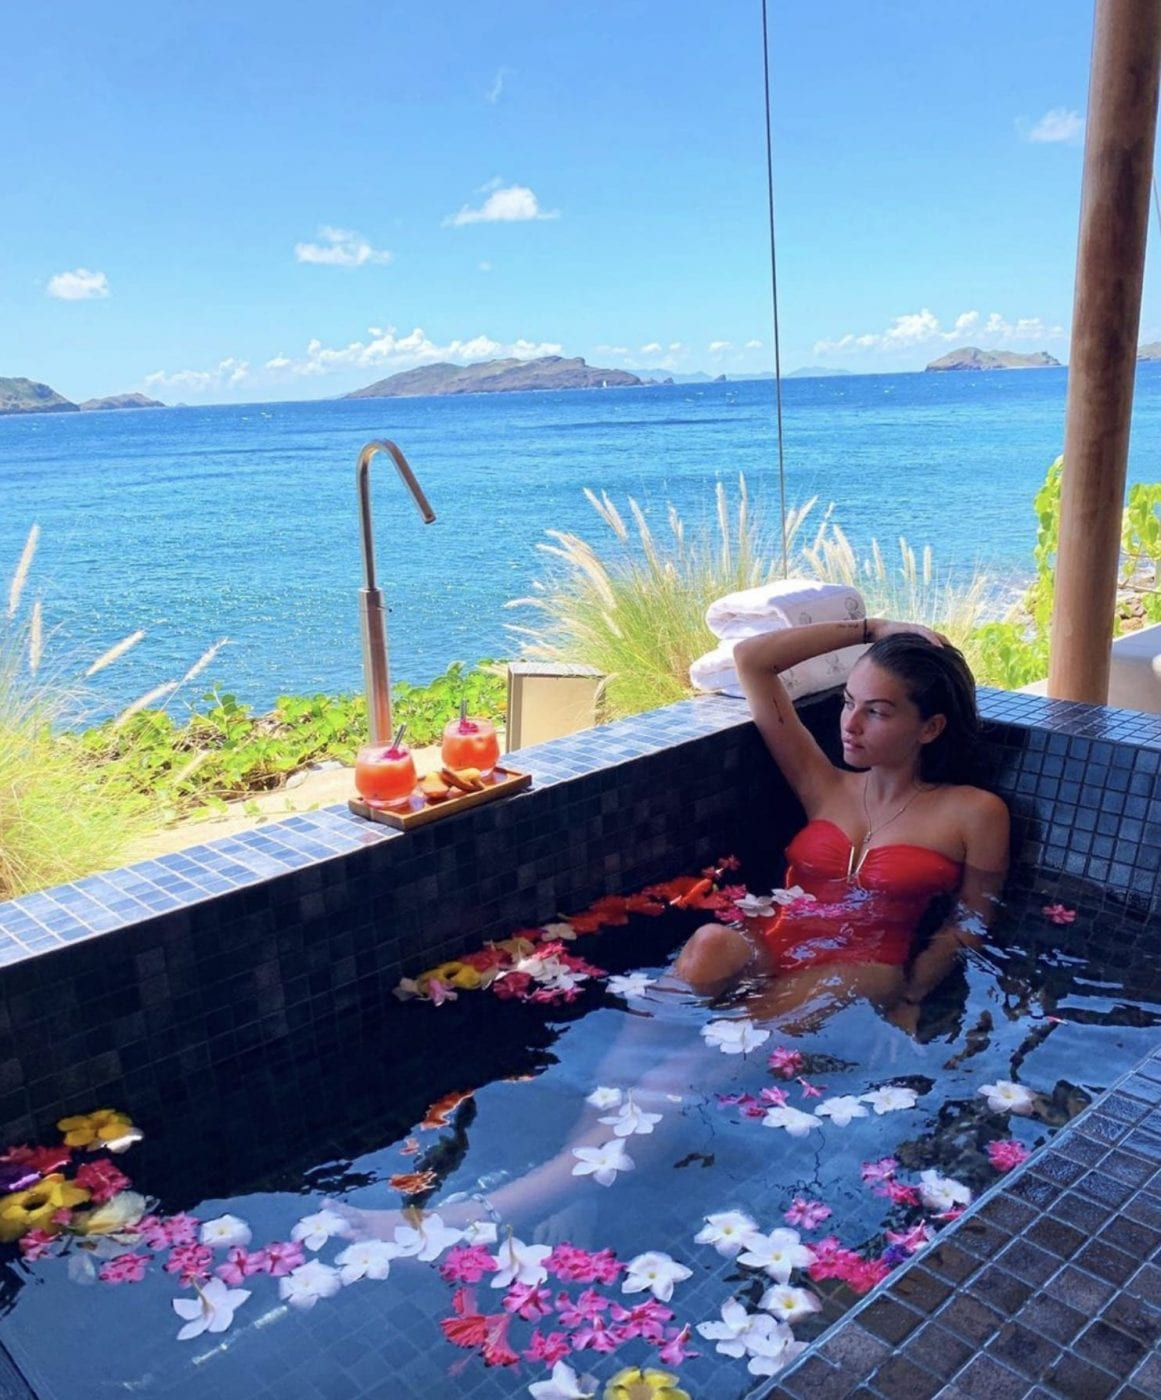 Thylane Blondeau enjoyed a bath with a view. Credit: Instagram